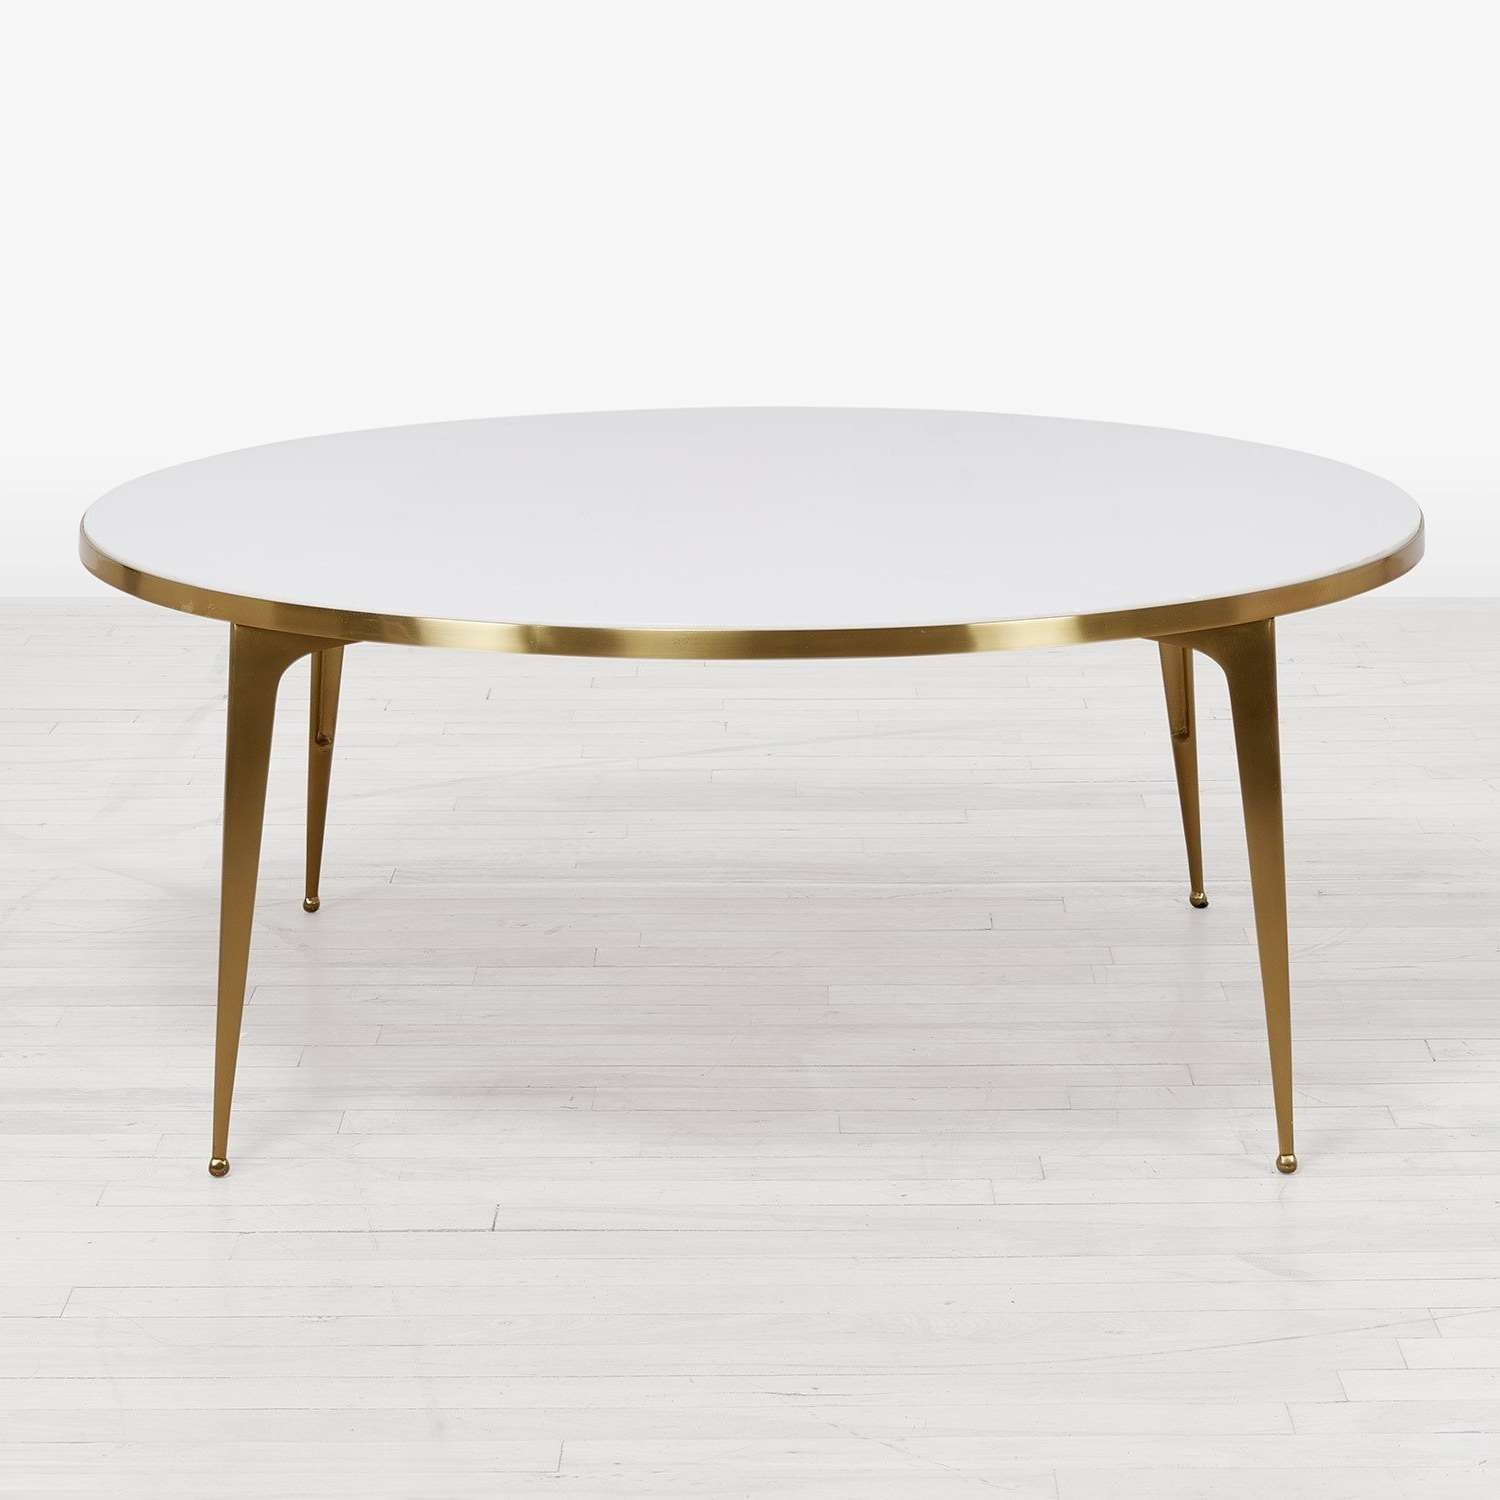 Coffee Tables : Fold Up Coffee Table Round Marble Top Low Square In Best And Newest White Oval Coffee Tables (View 18 of 20)